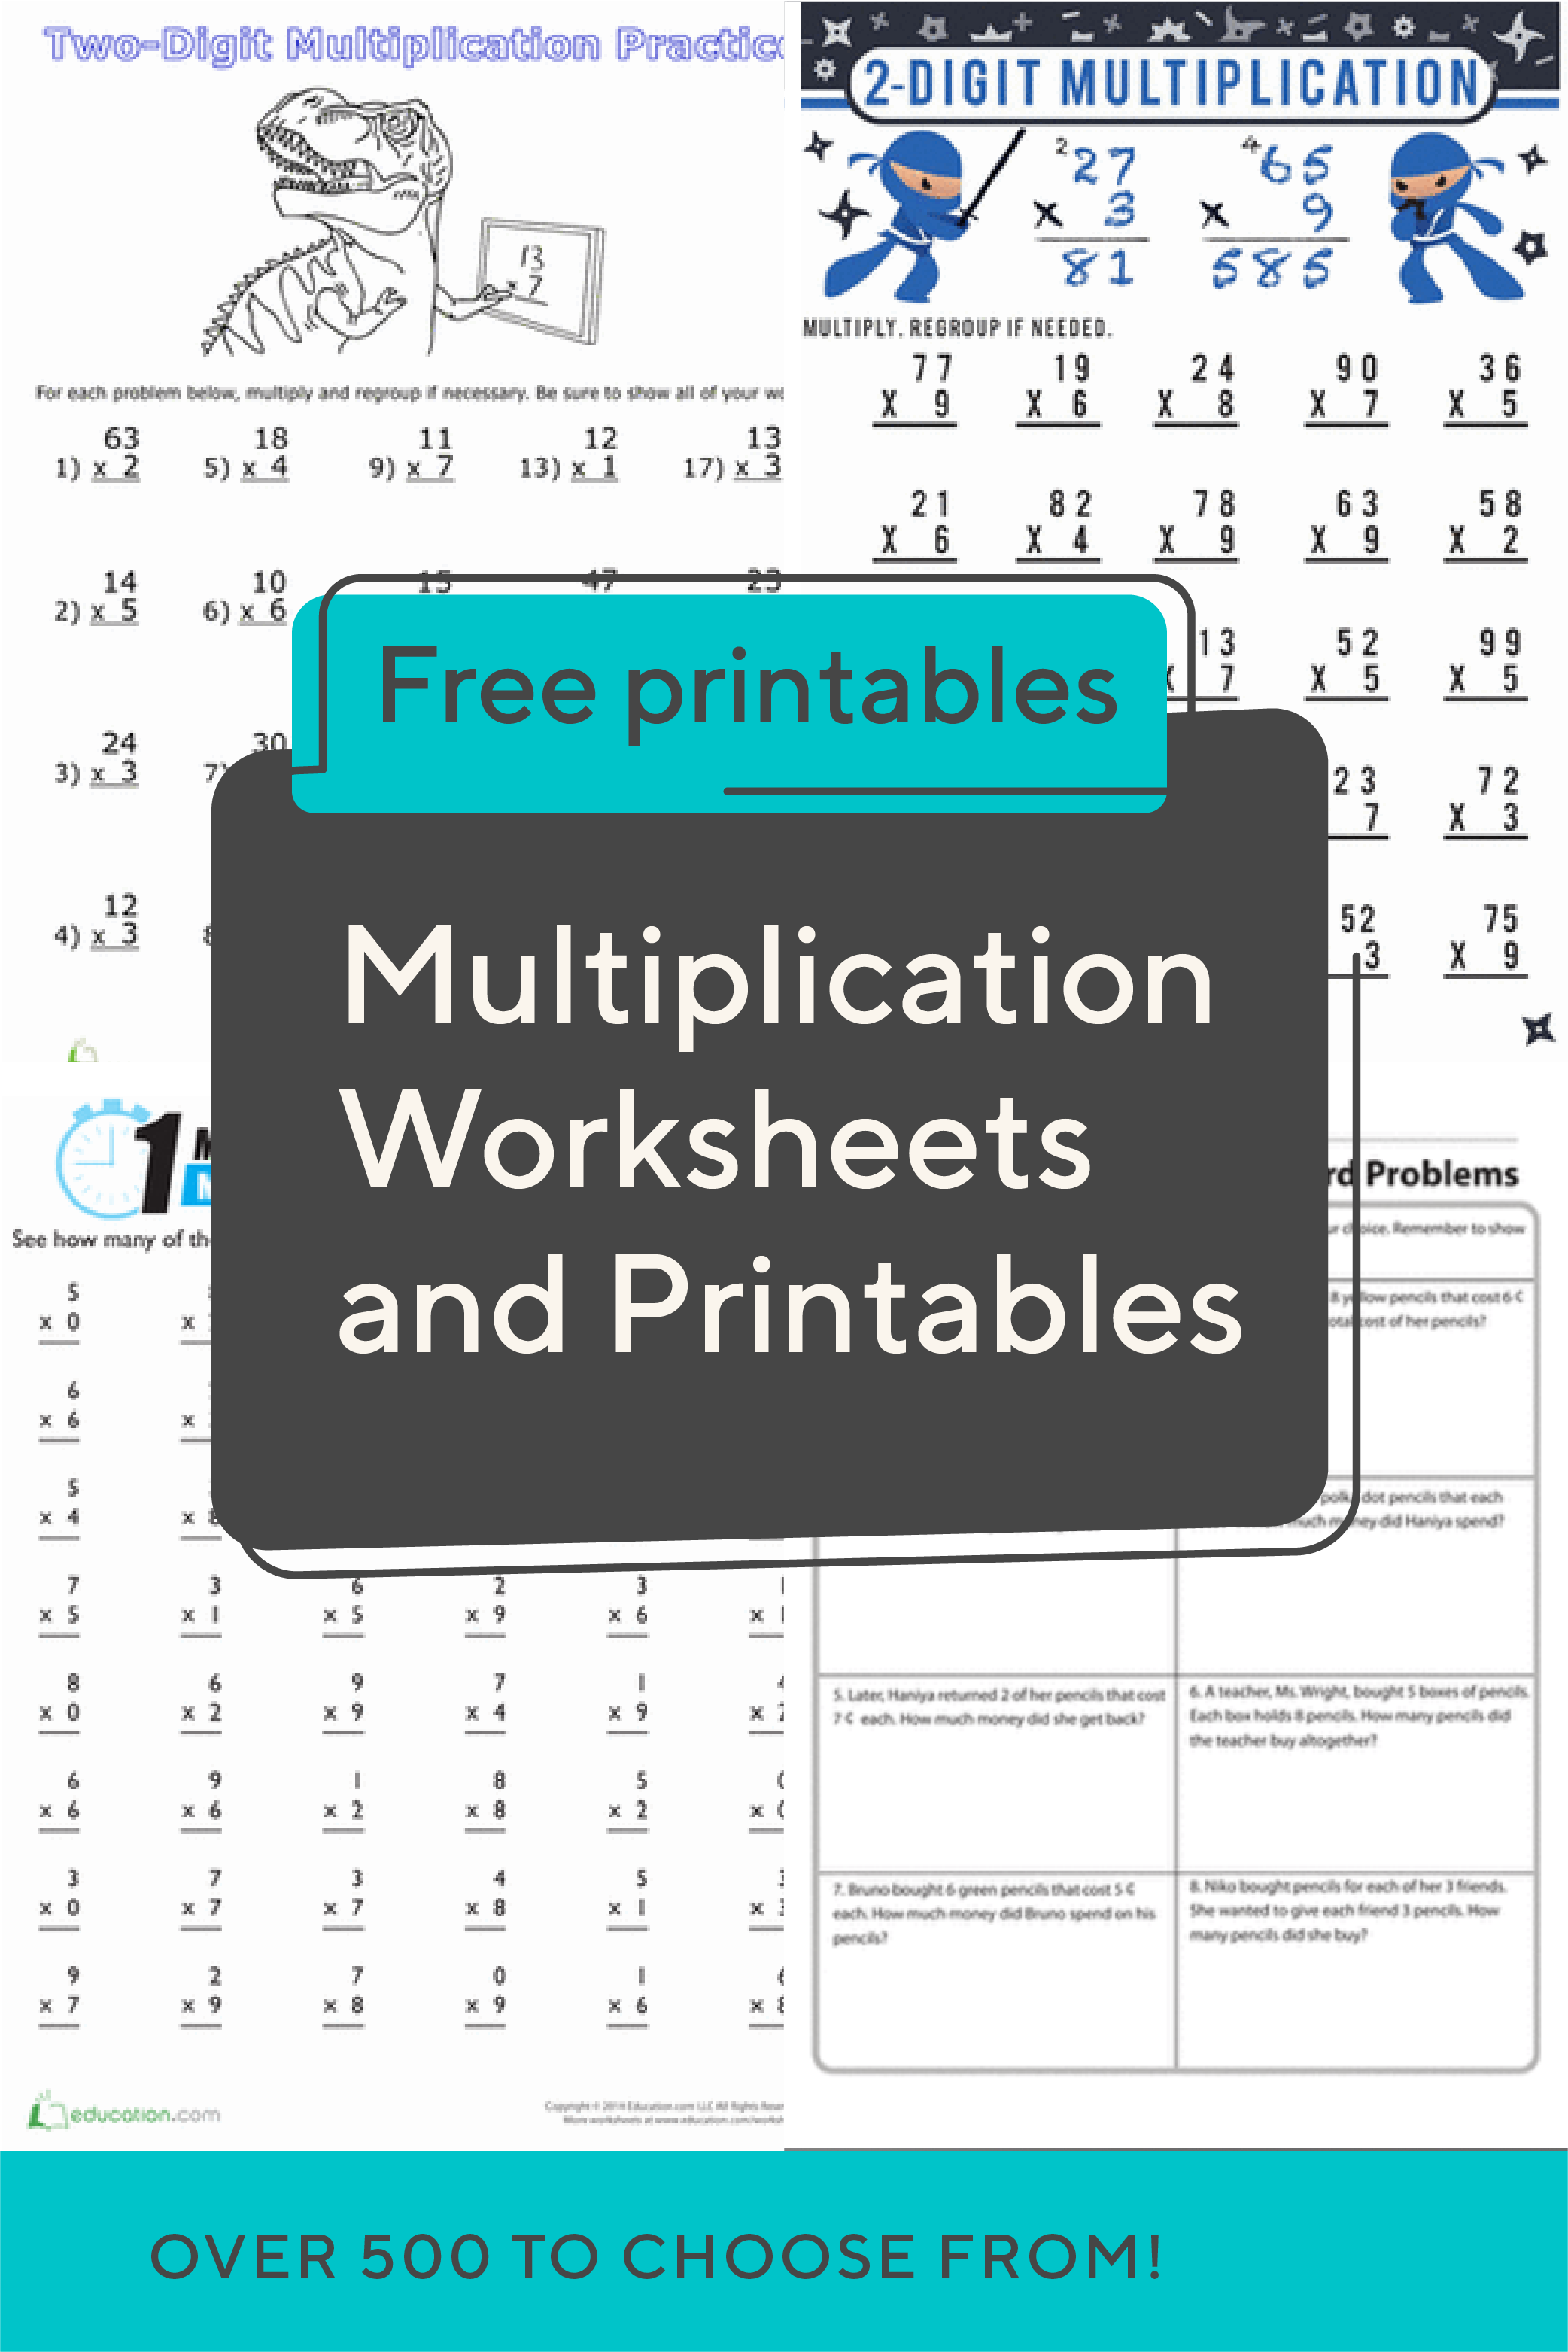 Multiplication Worksheets And Printables